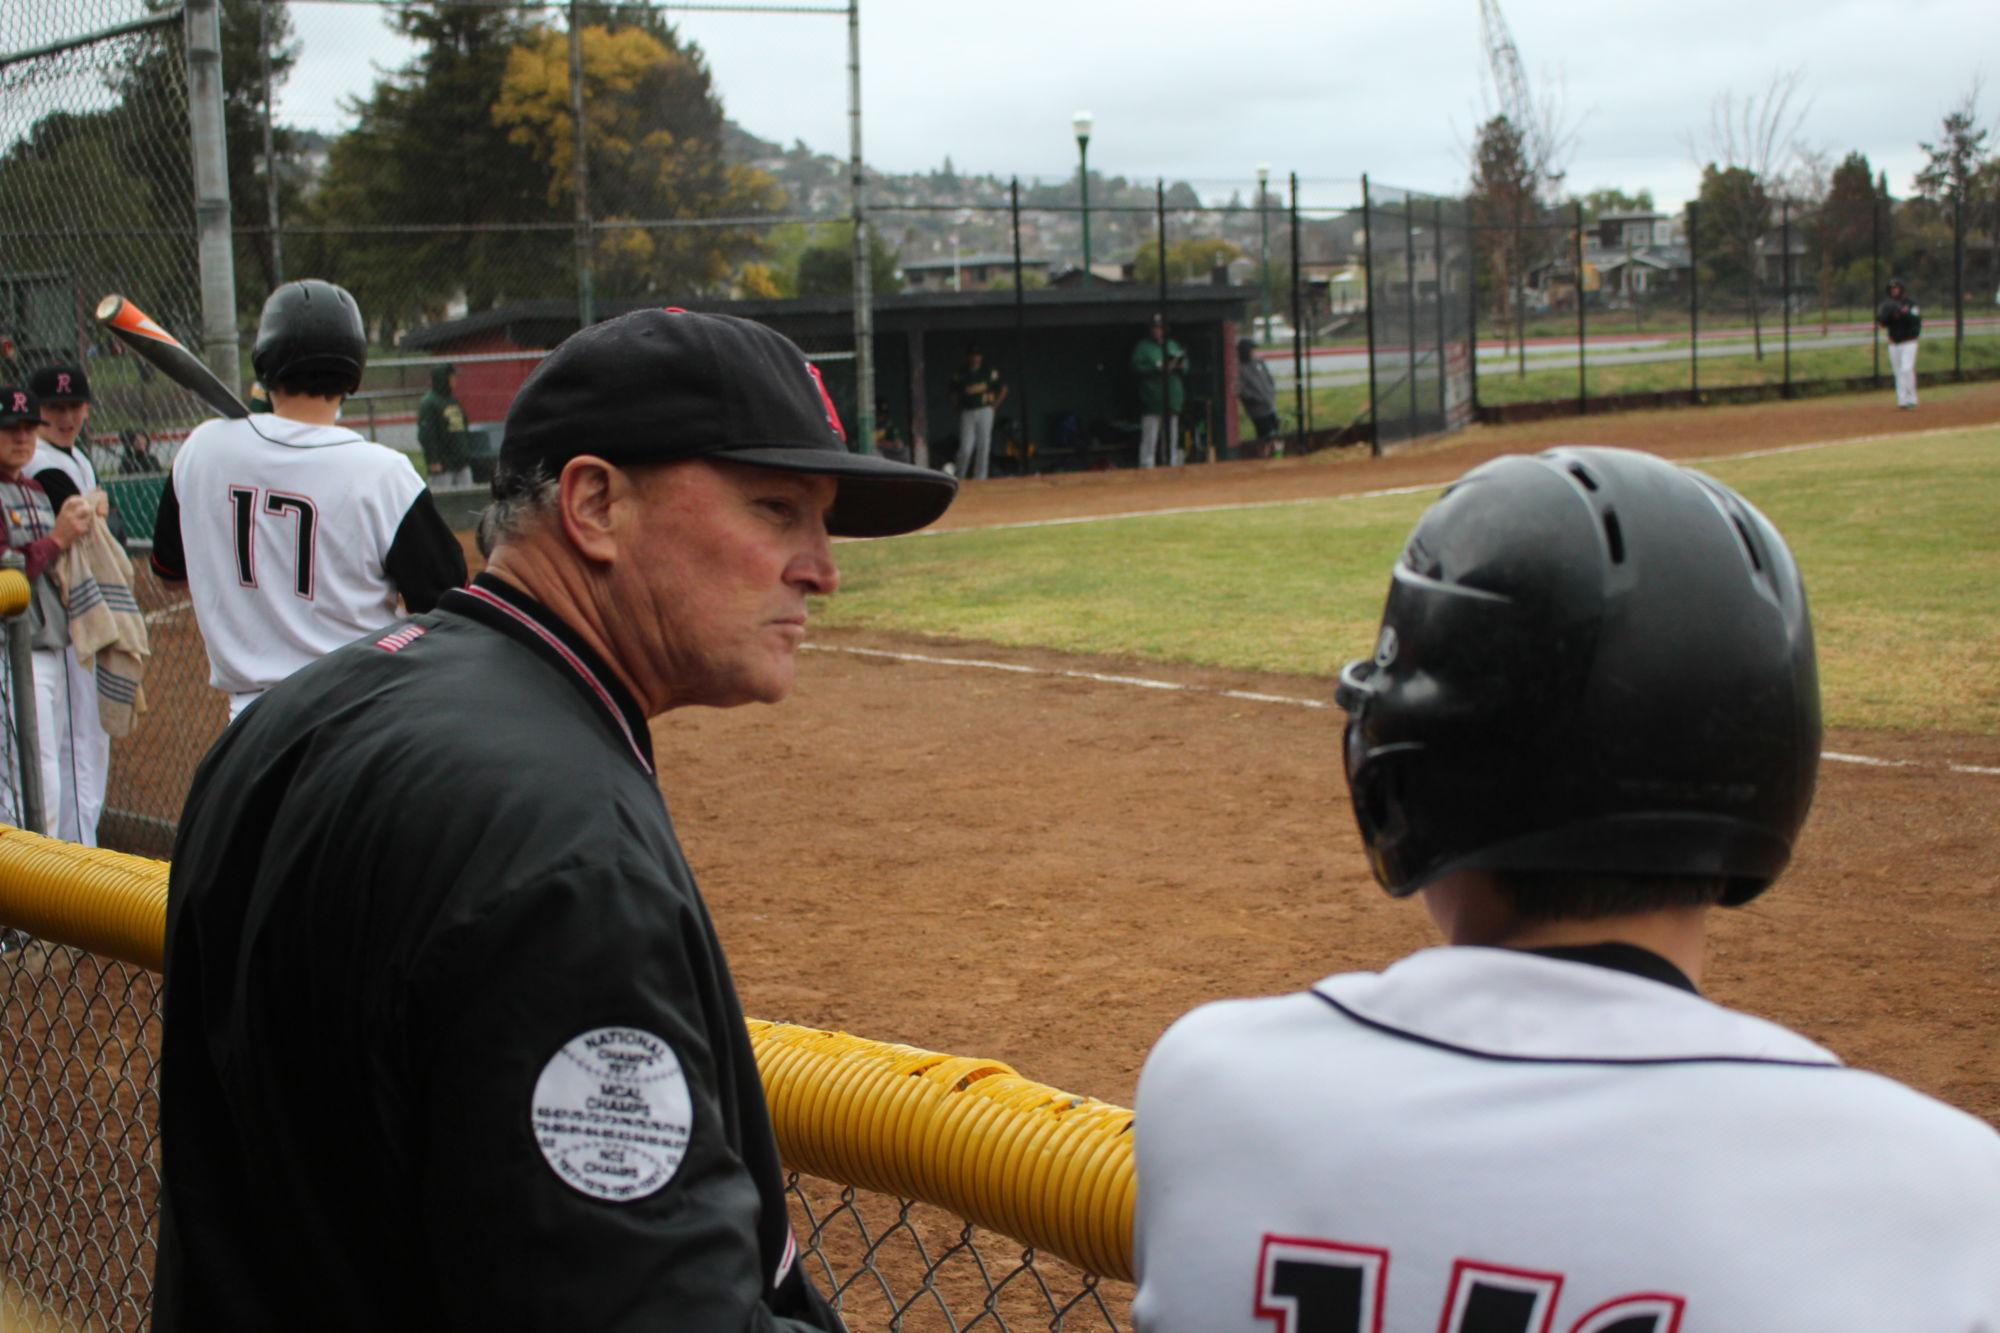 Standing+in+the+dugout%2C+assistant+coach+Dan+Watson+chats+with+Nathan+Hirsch.